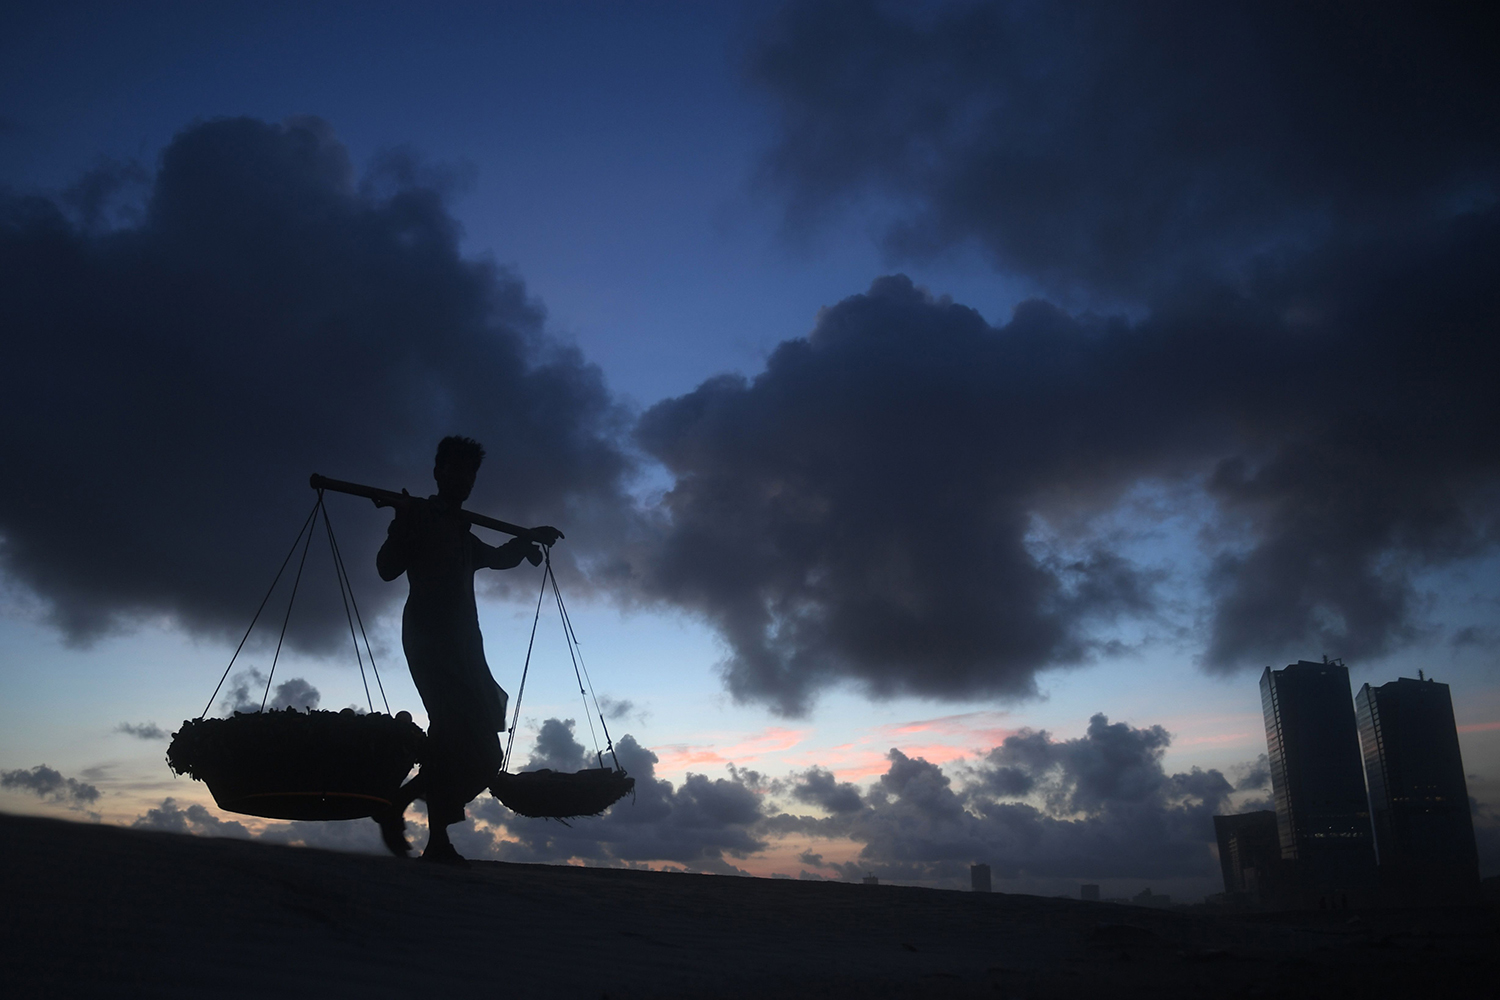 A fruit vendor walks with his wares at Sea View Beach in Karachi, Pakistan, on July 19. ASIF HASSAN/AFP via Getty Images